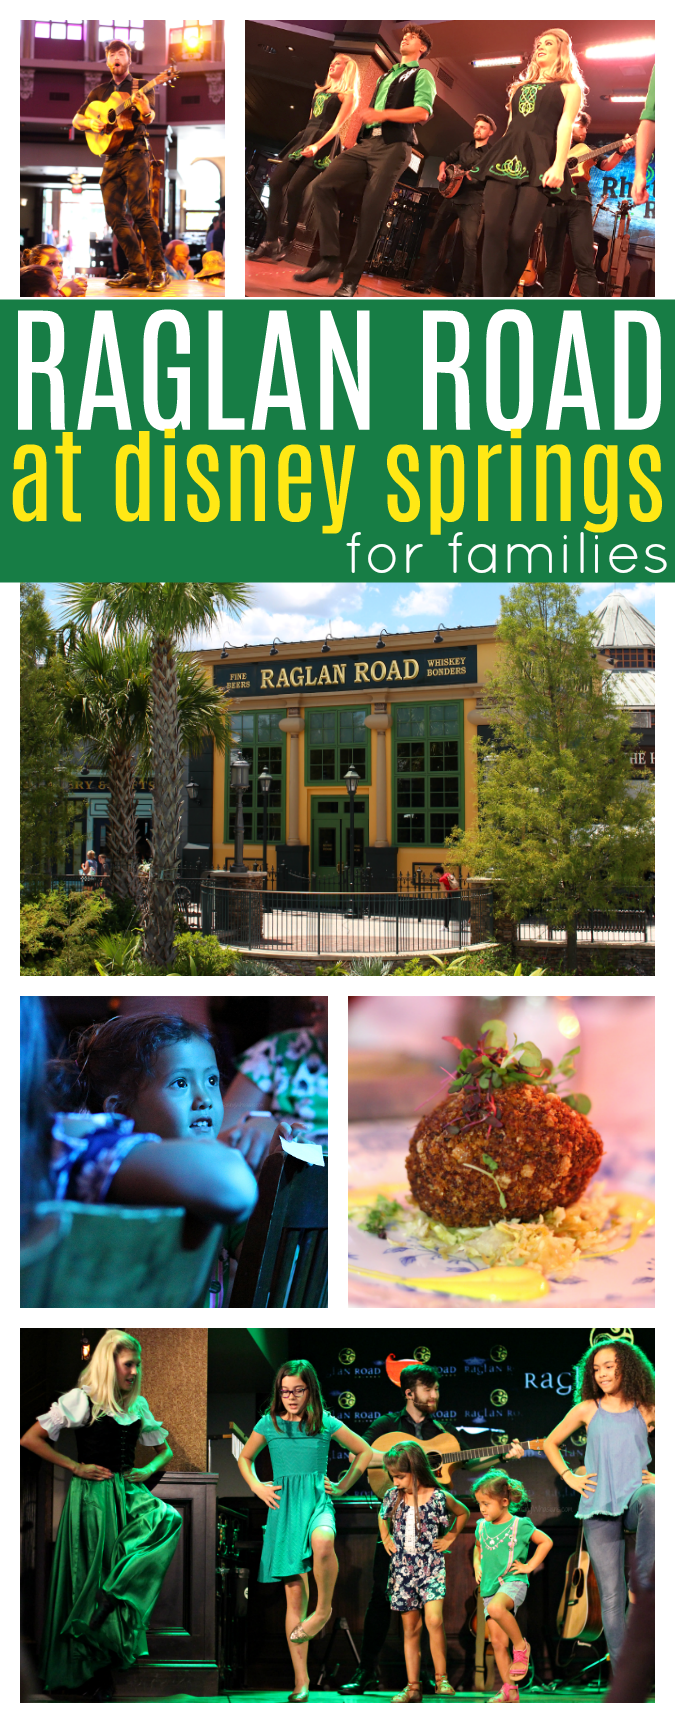 Raglan road at Disney springs for families